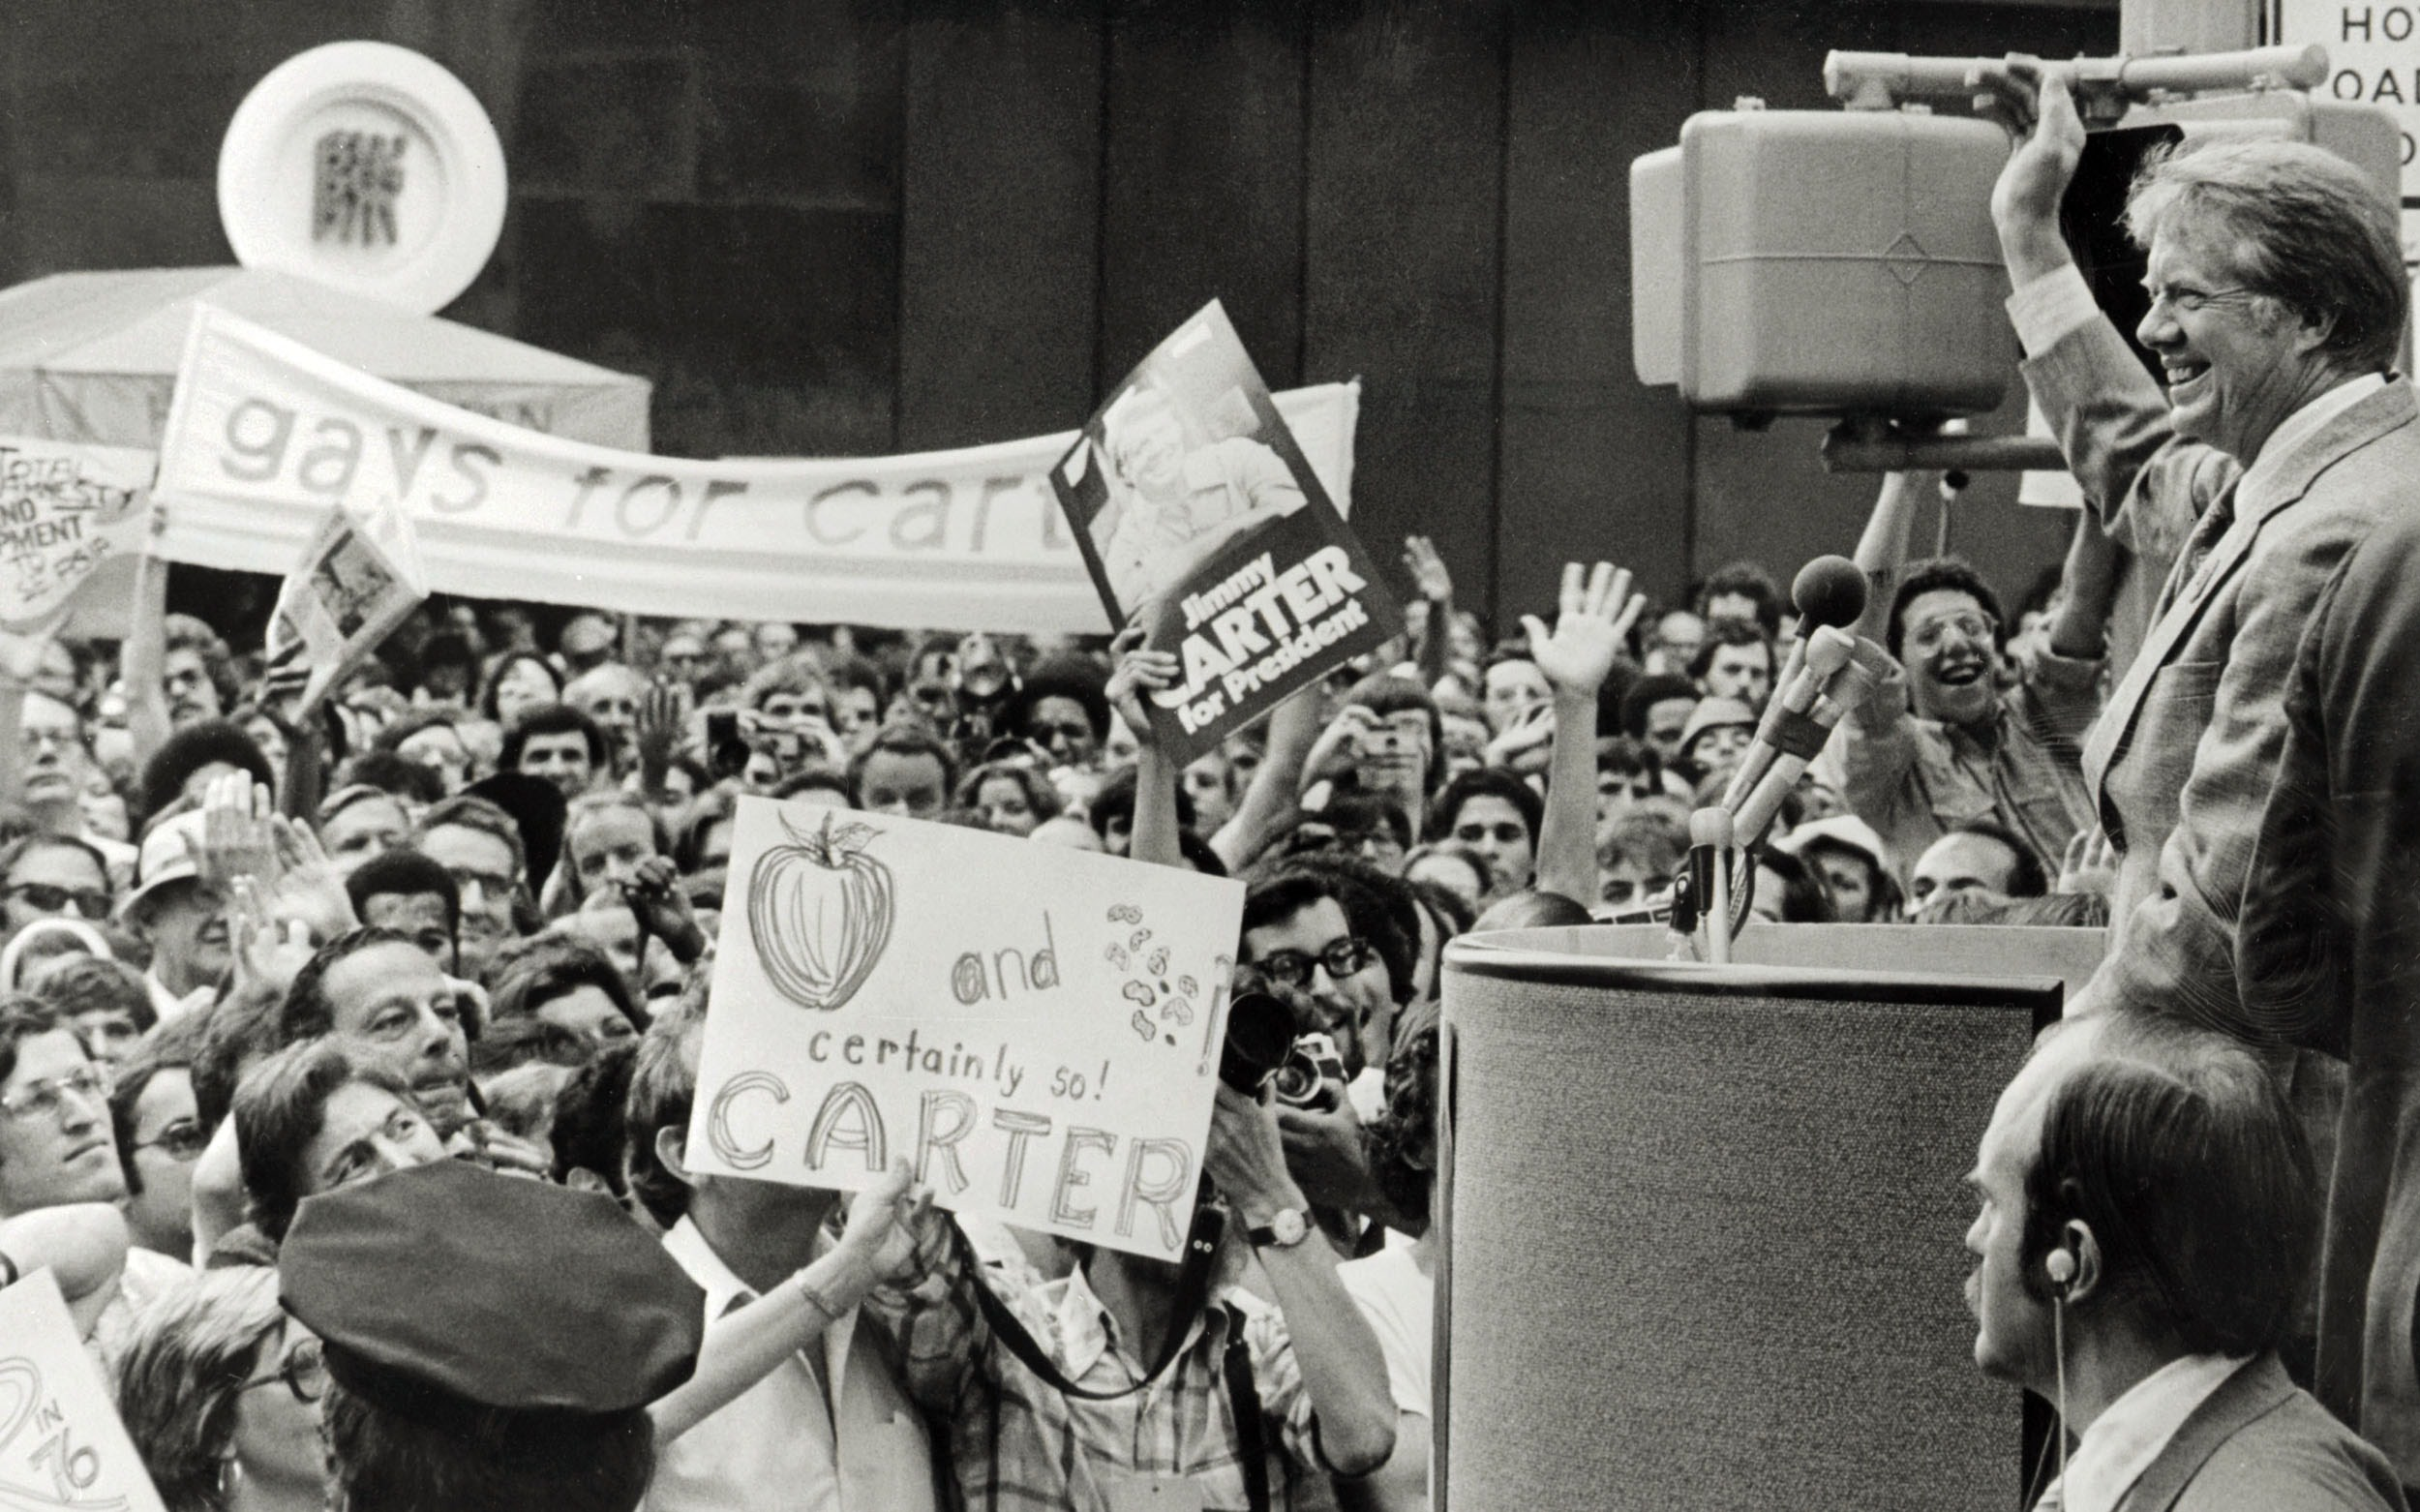 Democratic presidential hopeful Jimmy Carter addresses a crowd during the 1976 Democratic National Convention in New York. (Photo by AFP/Getty Images)